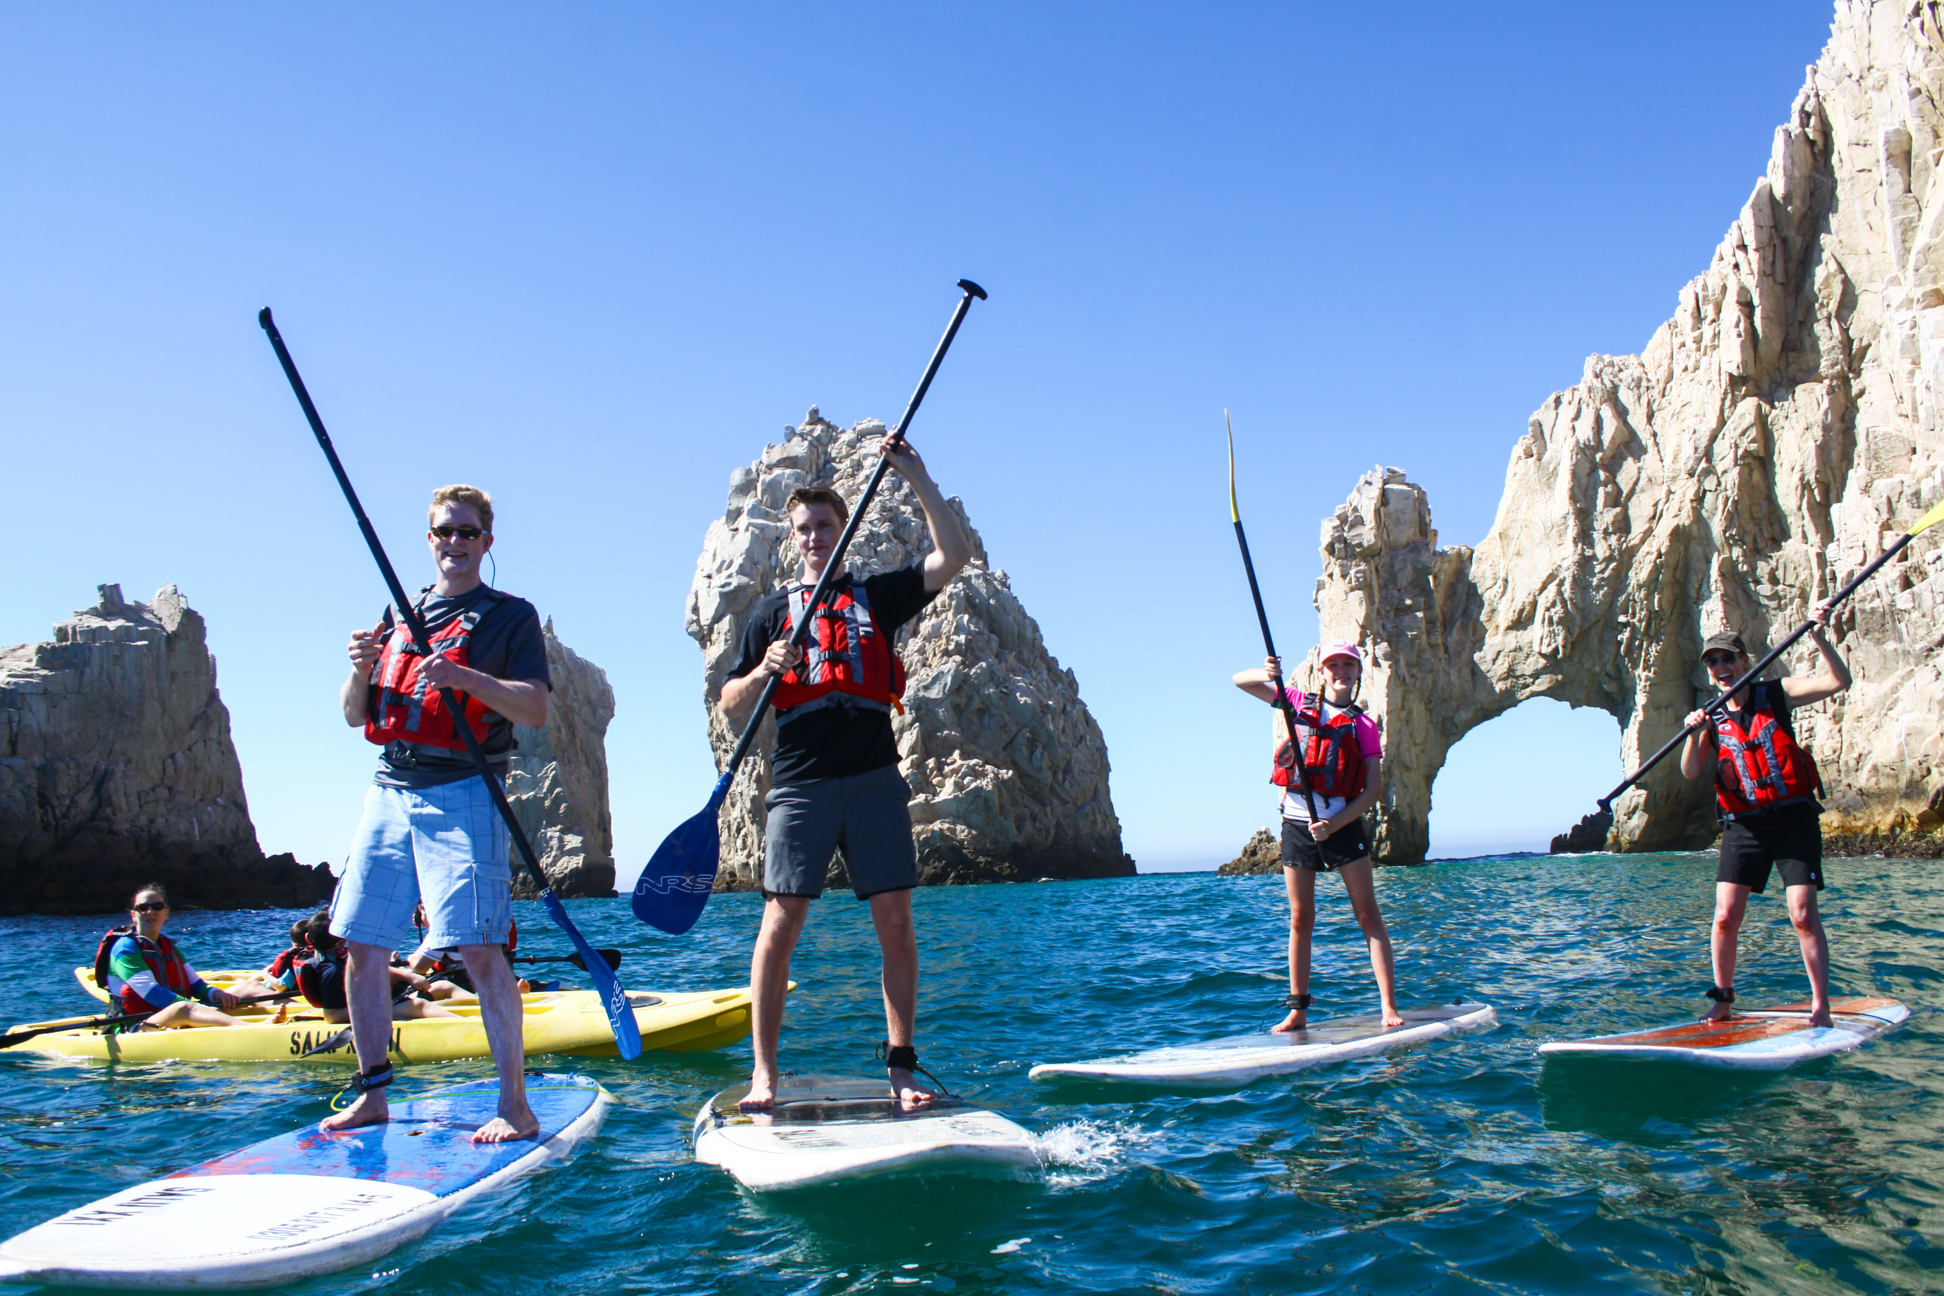 Private Los Cabos SUP tour: Paddleboard and snorkel the Arch